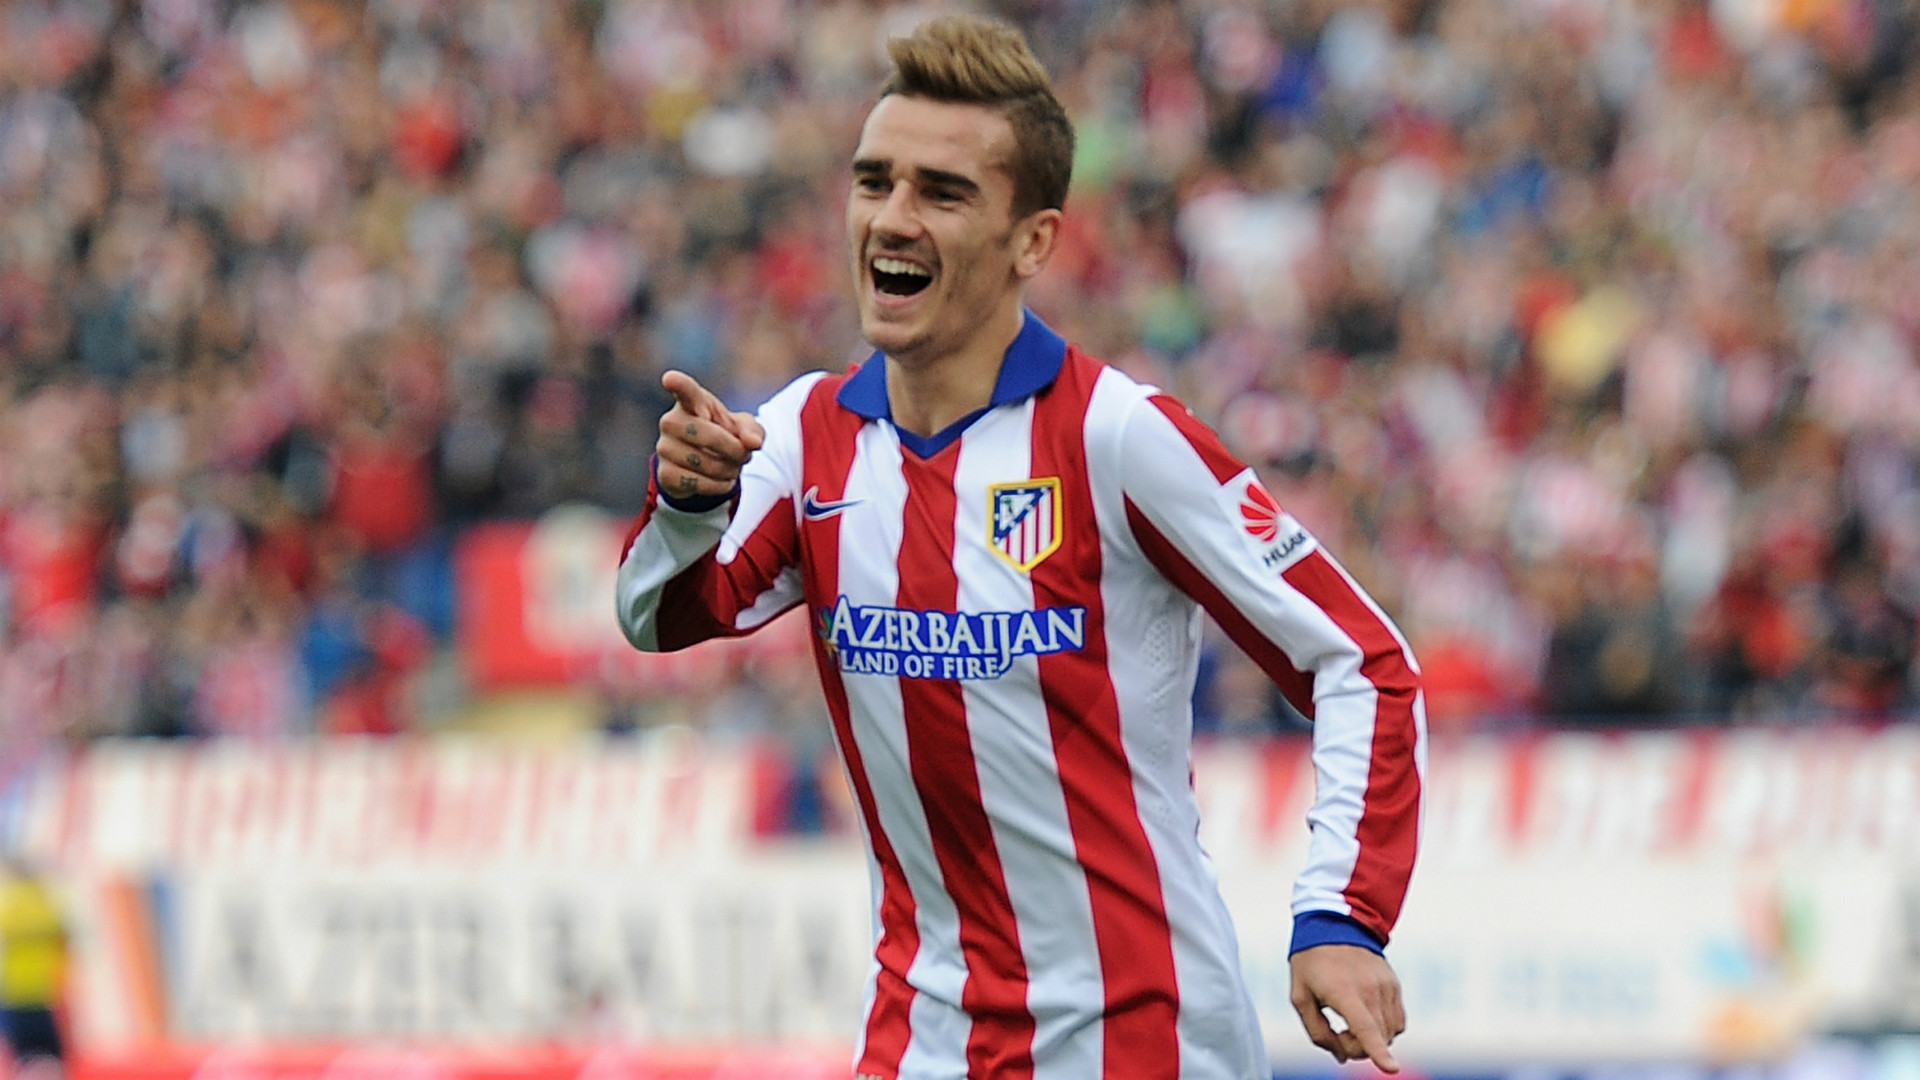 Atletico Madrid beat Sociedad in Spanish League